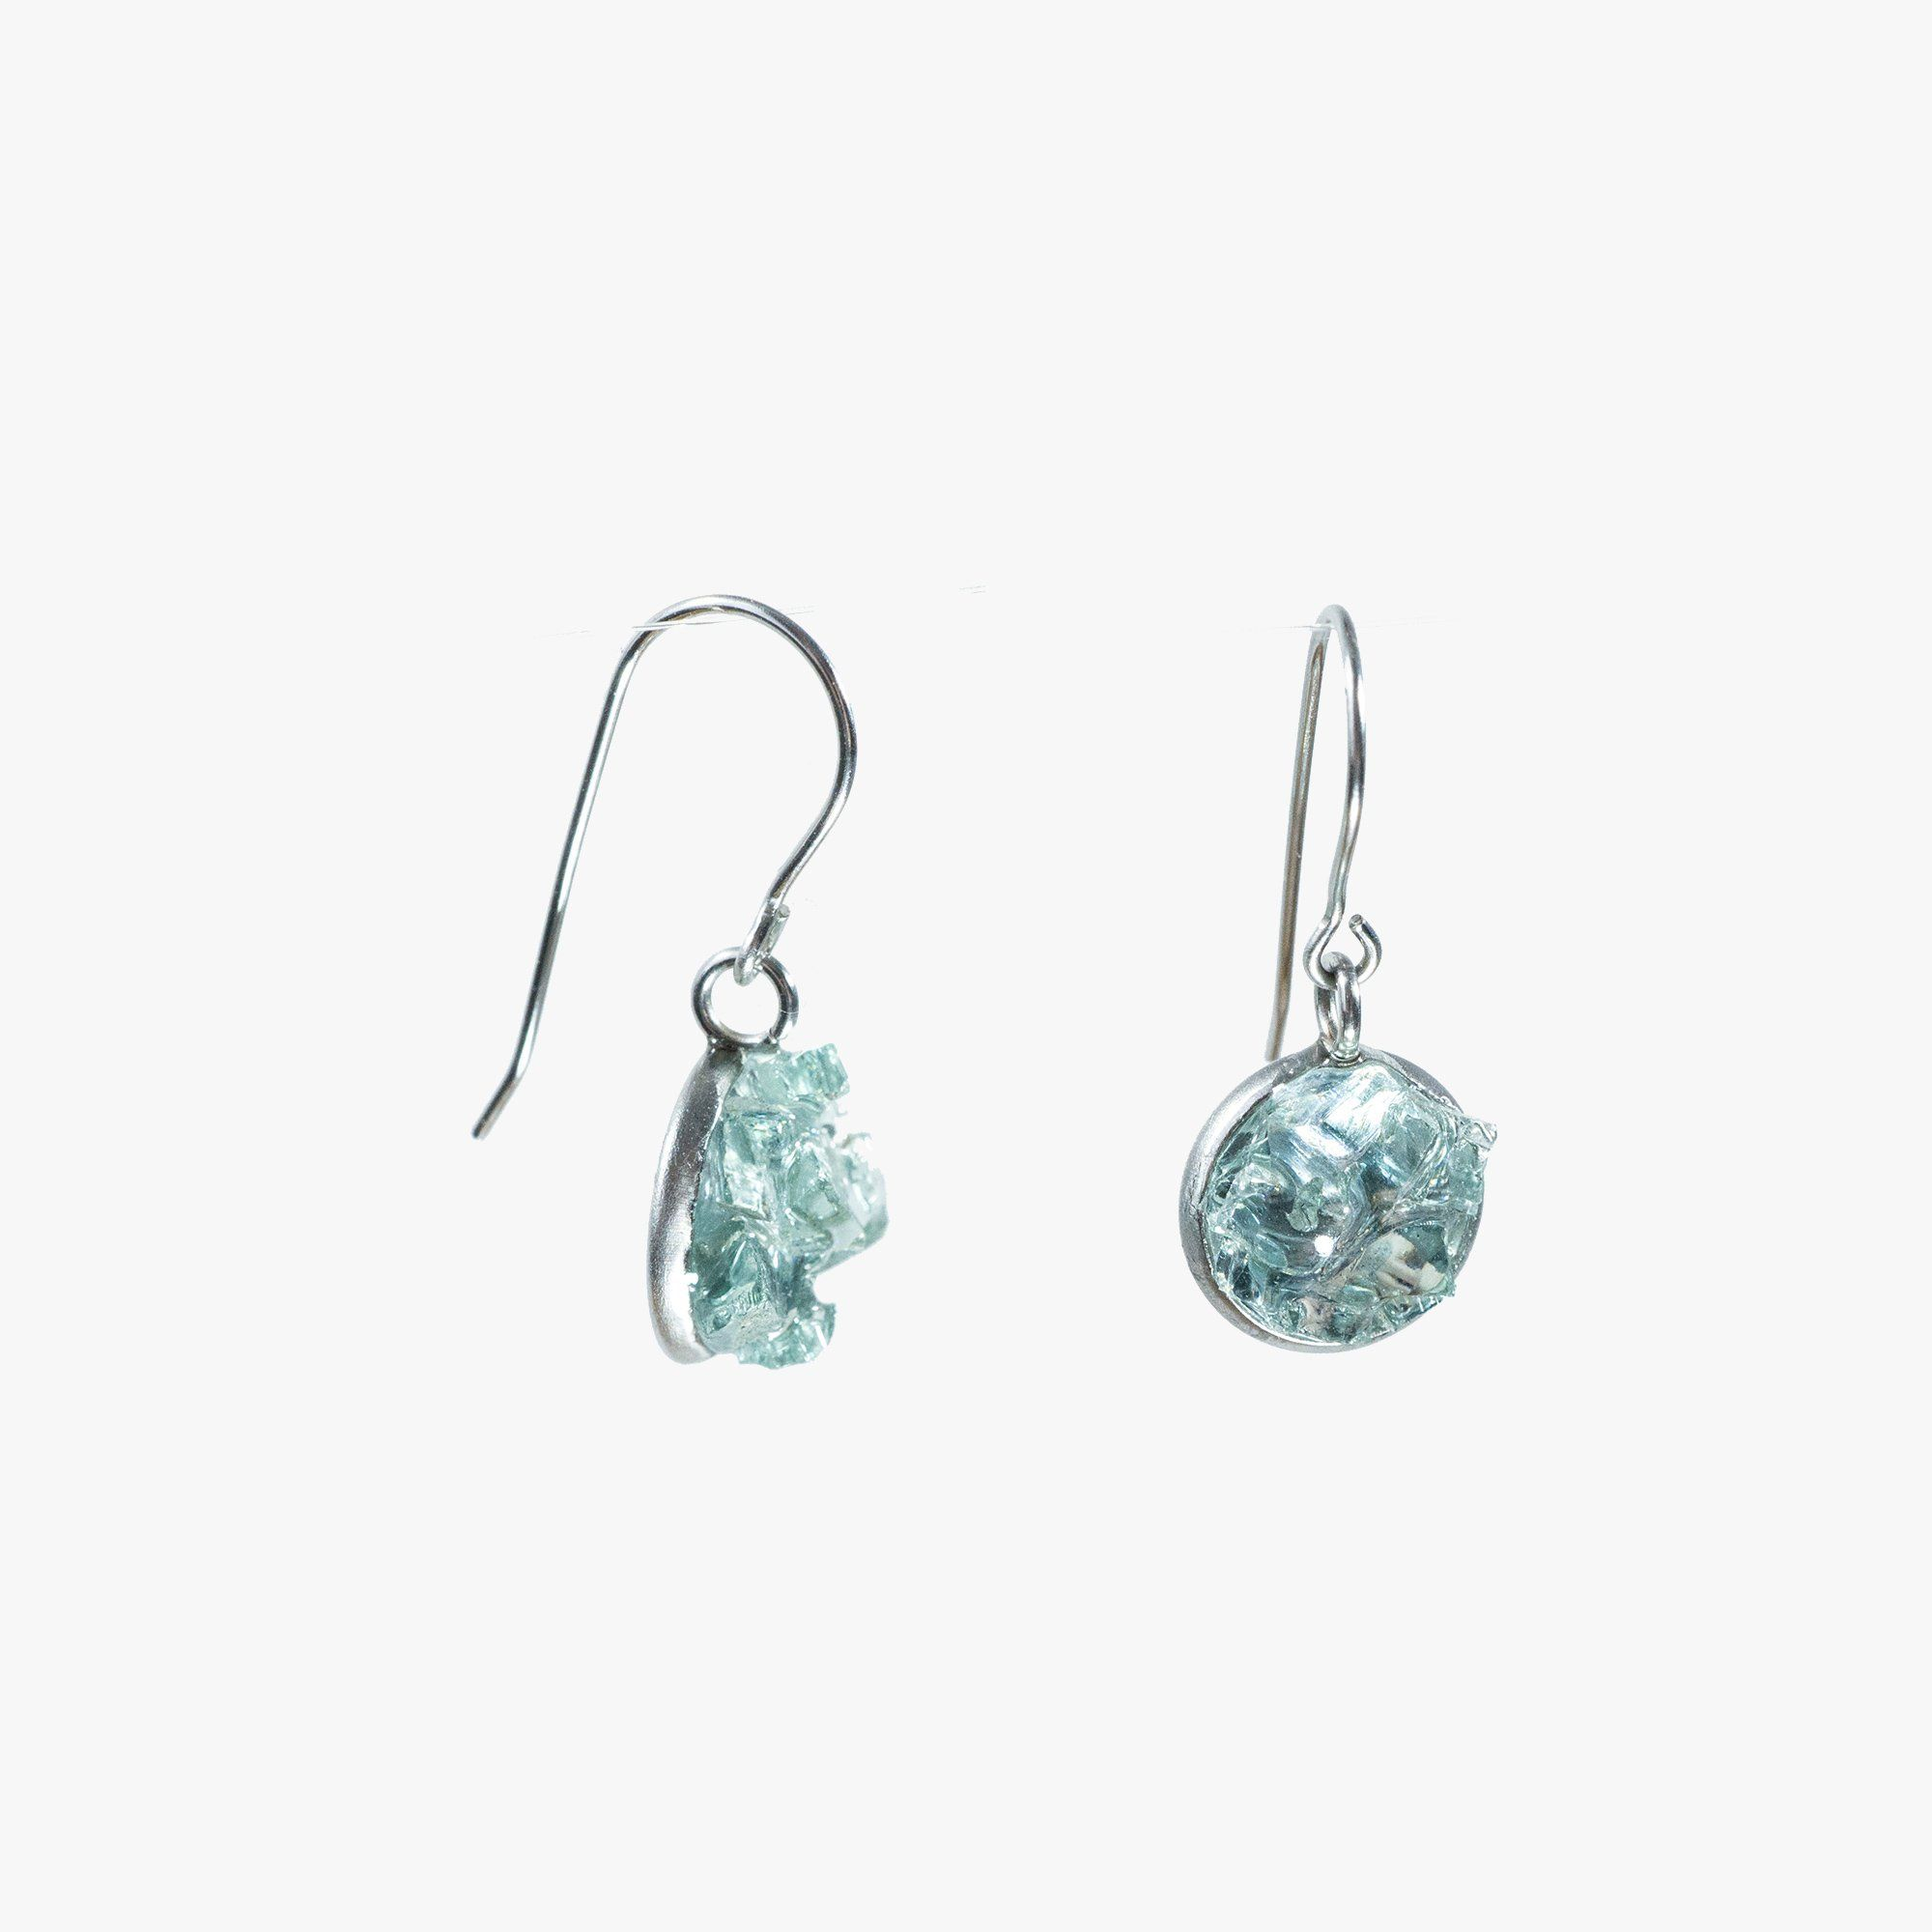 Auto Glass Earring - Cluster Dangle Small Aqua Cluster Cleveland Street Glass